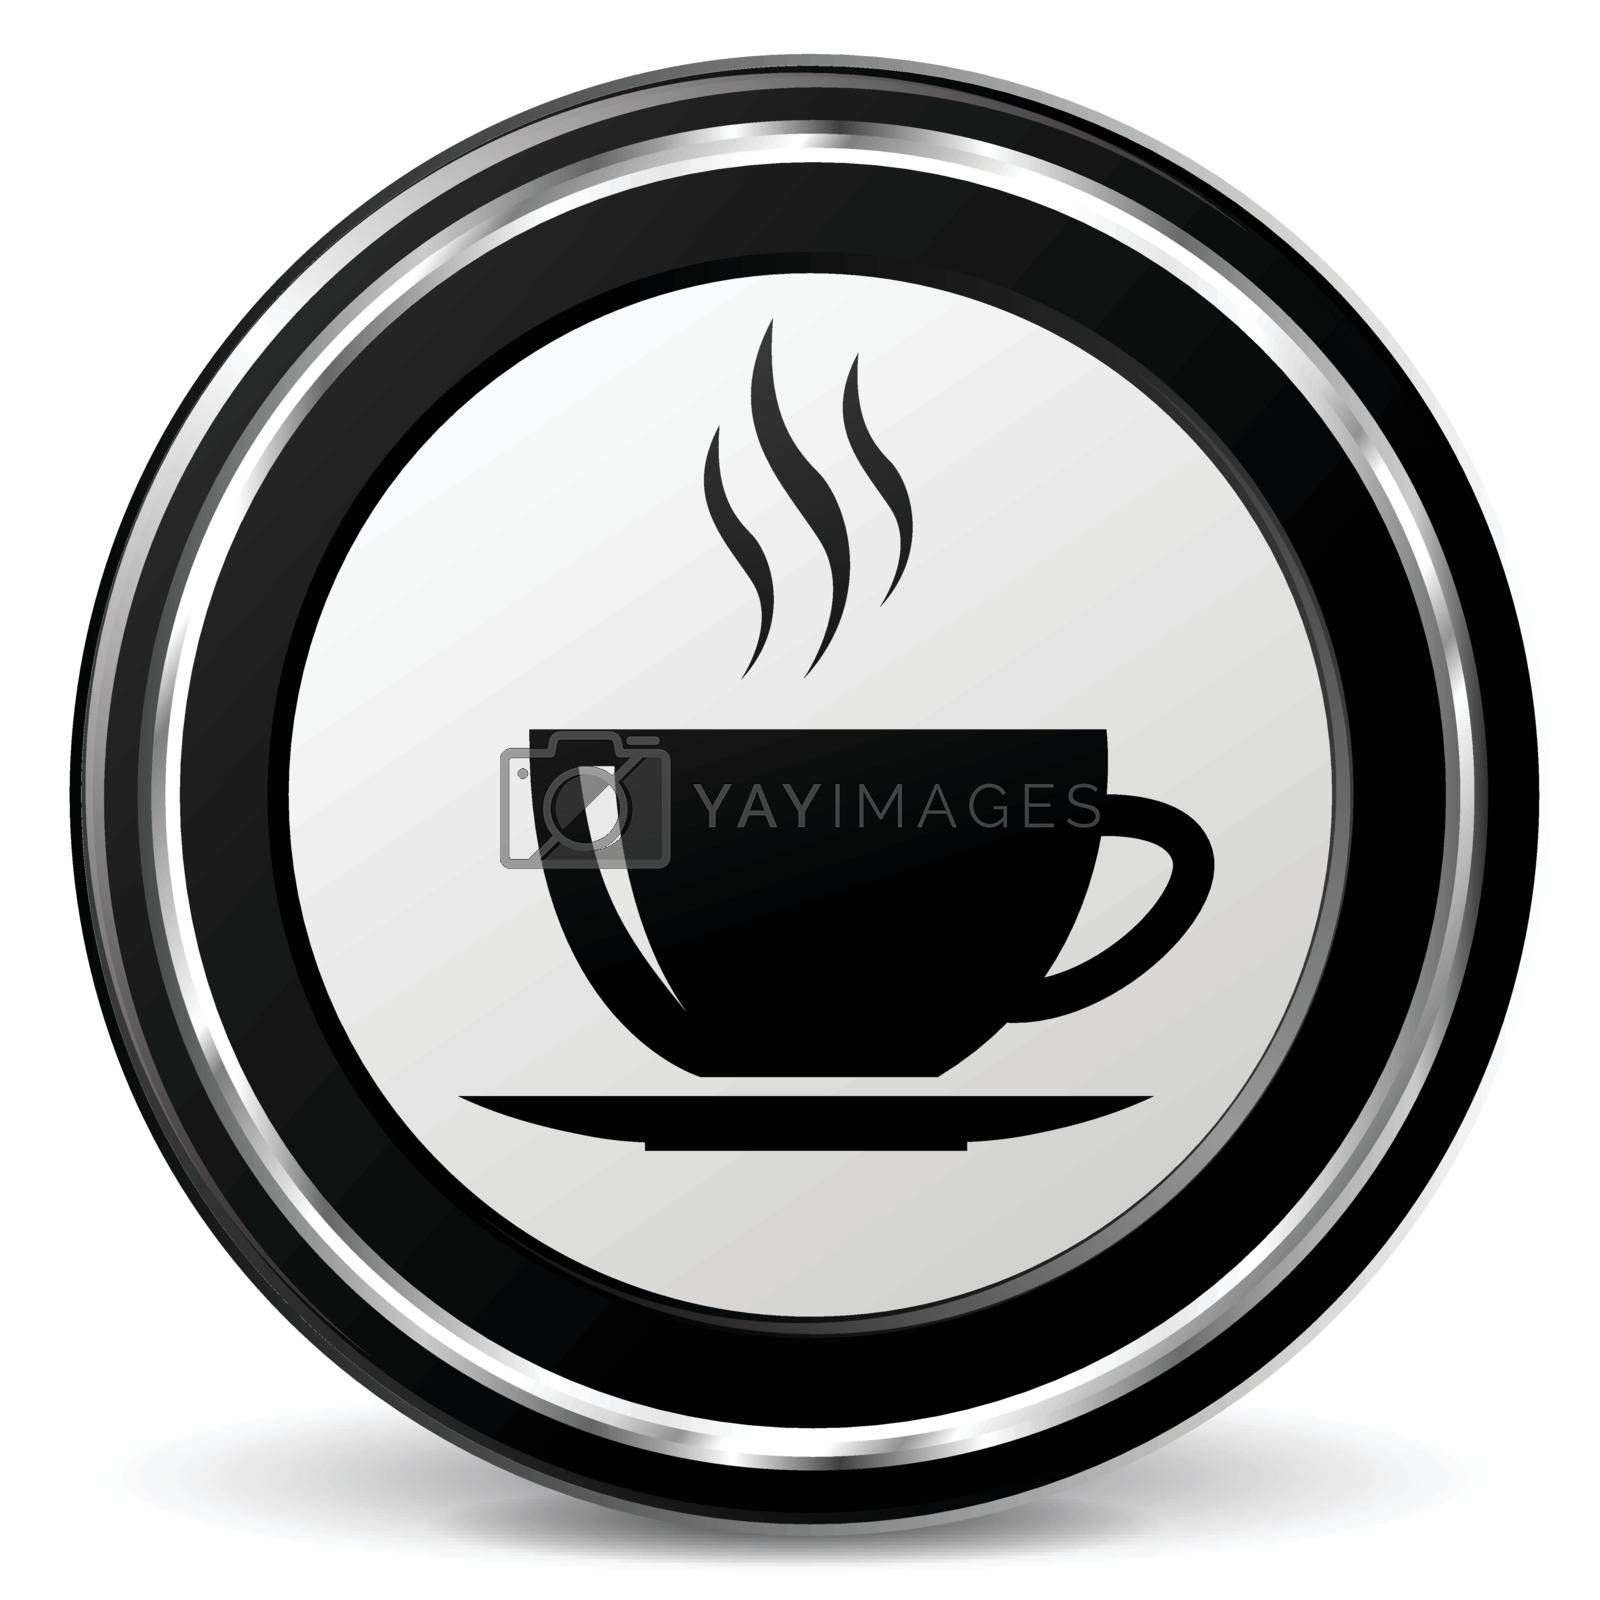 illustration of cup black and silver icon